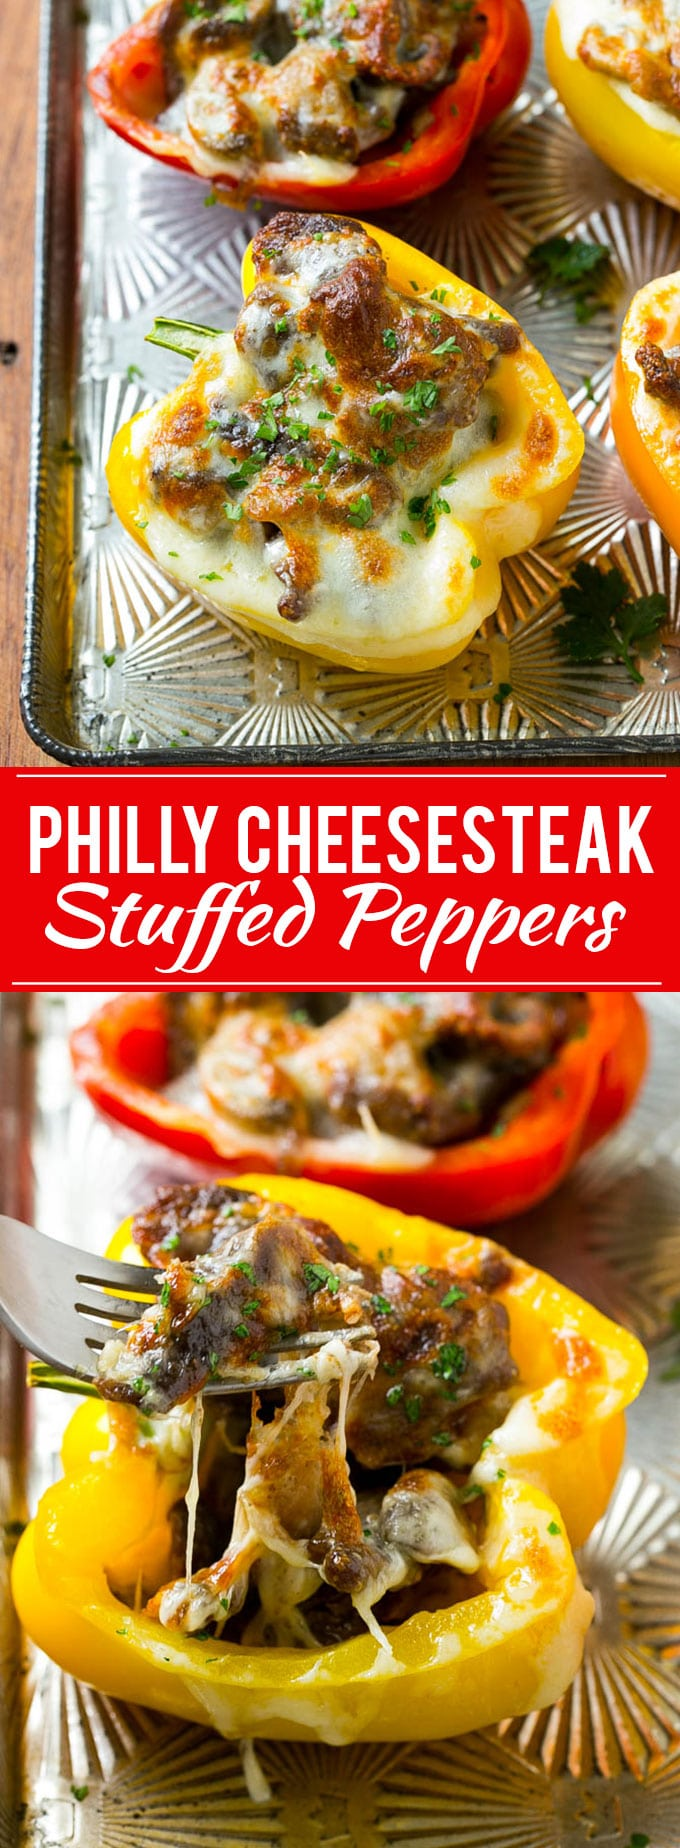 Philly Cheesesteak Stuffed Peppers Recipe   Easy Stuffed Peppers   Low Carb Stuffed Peppers